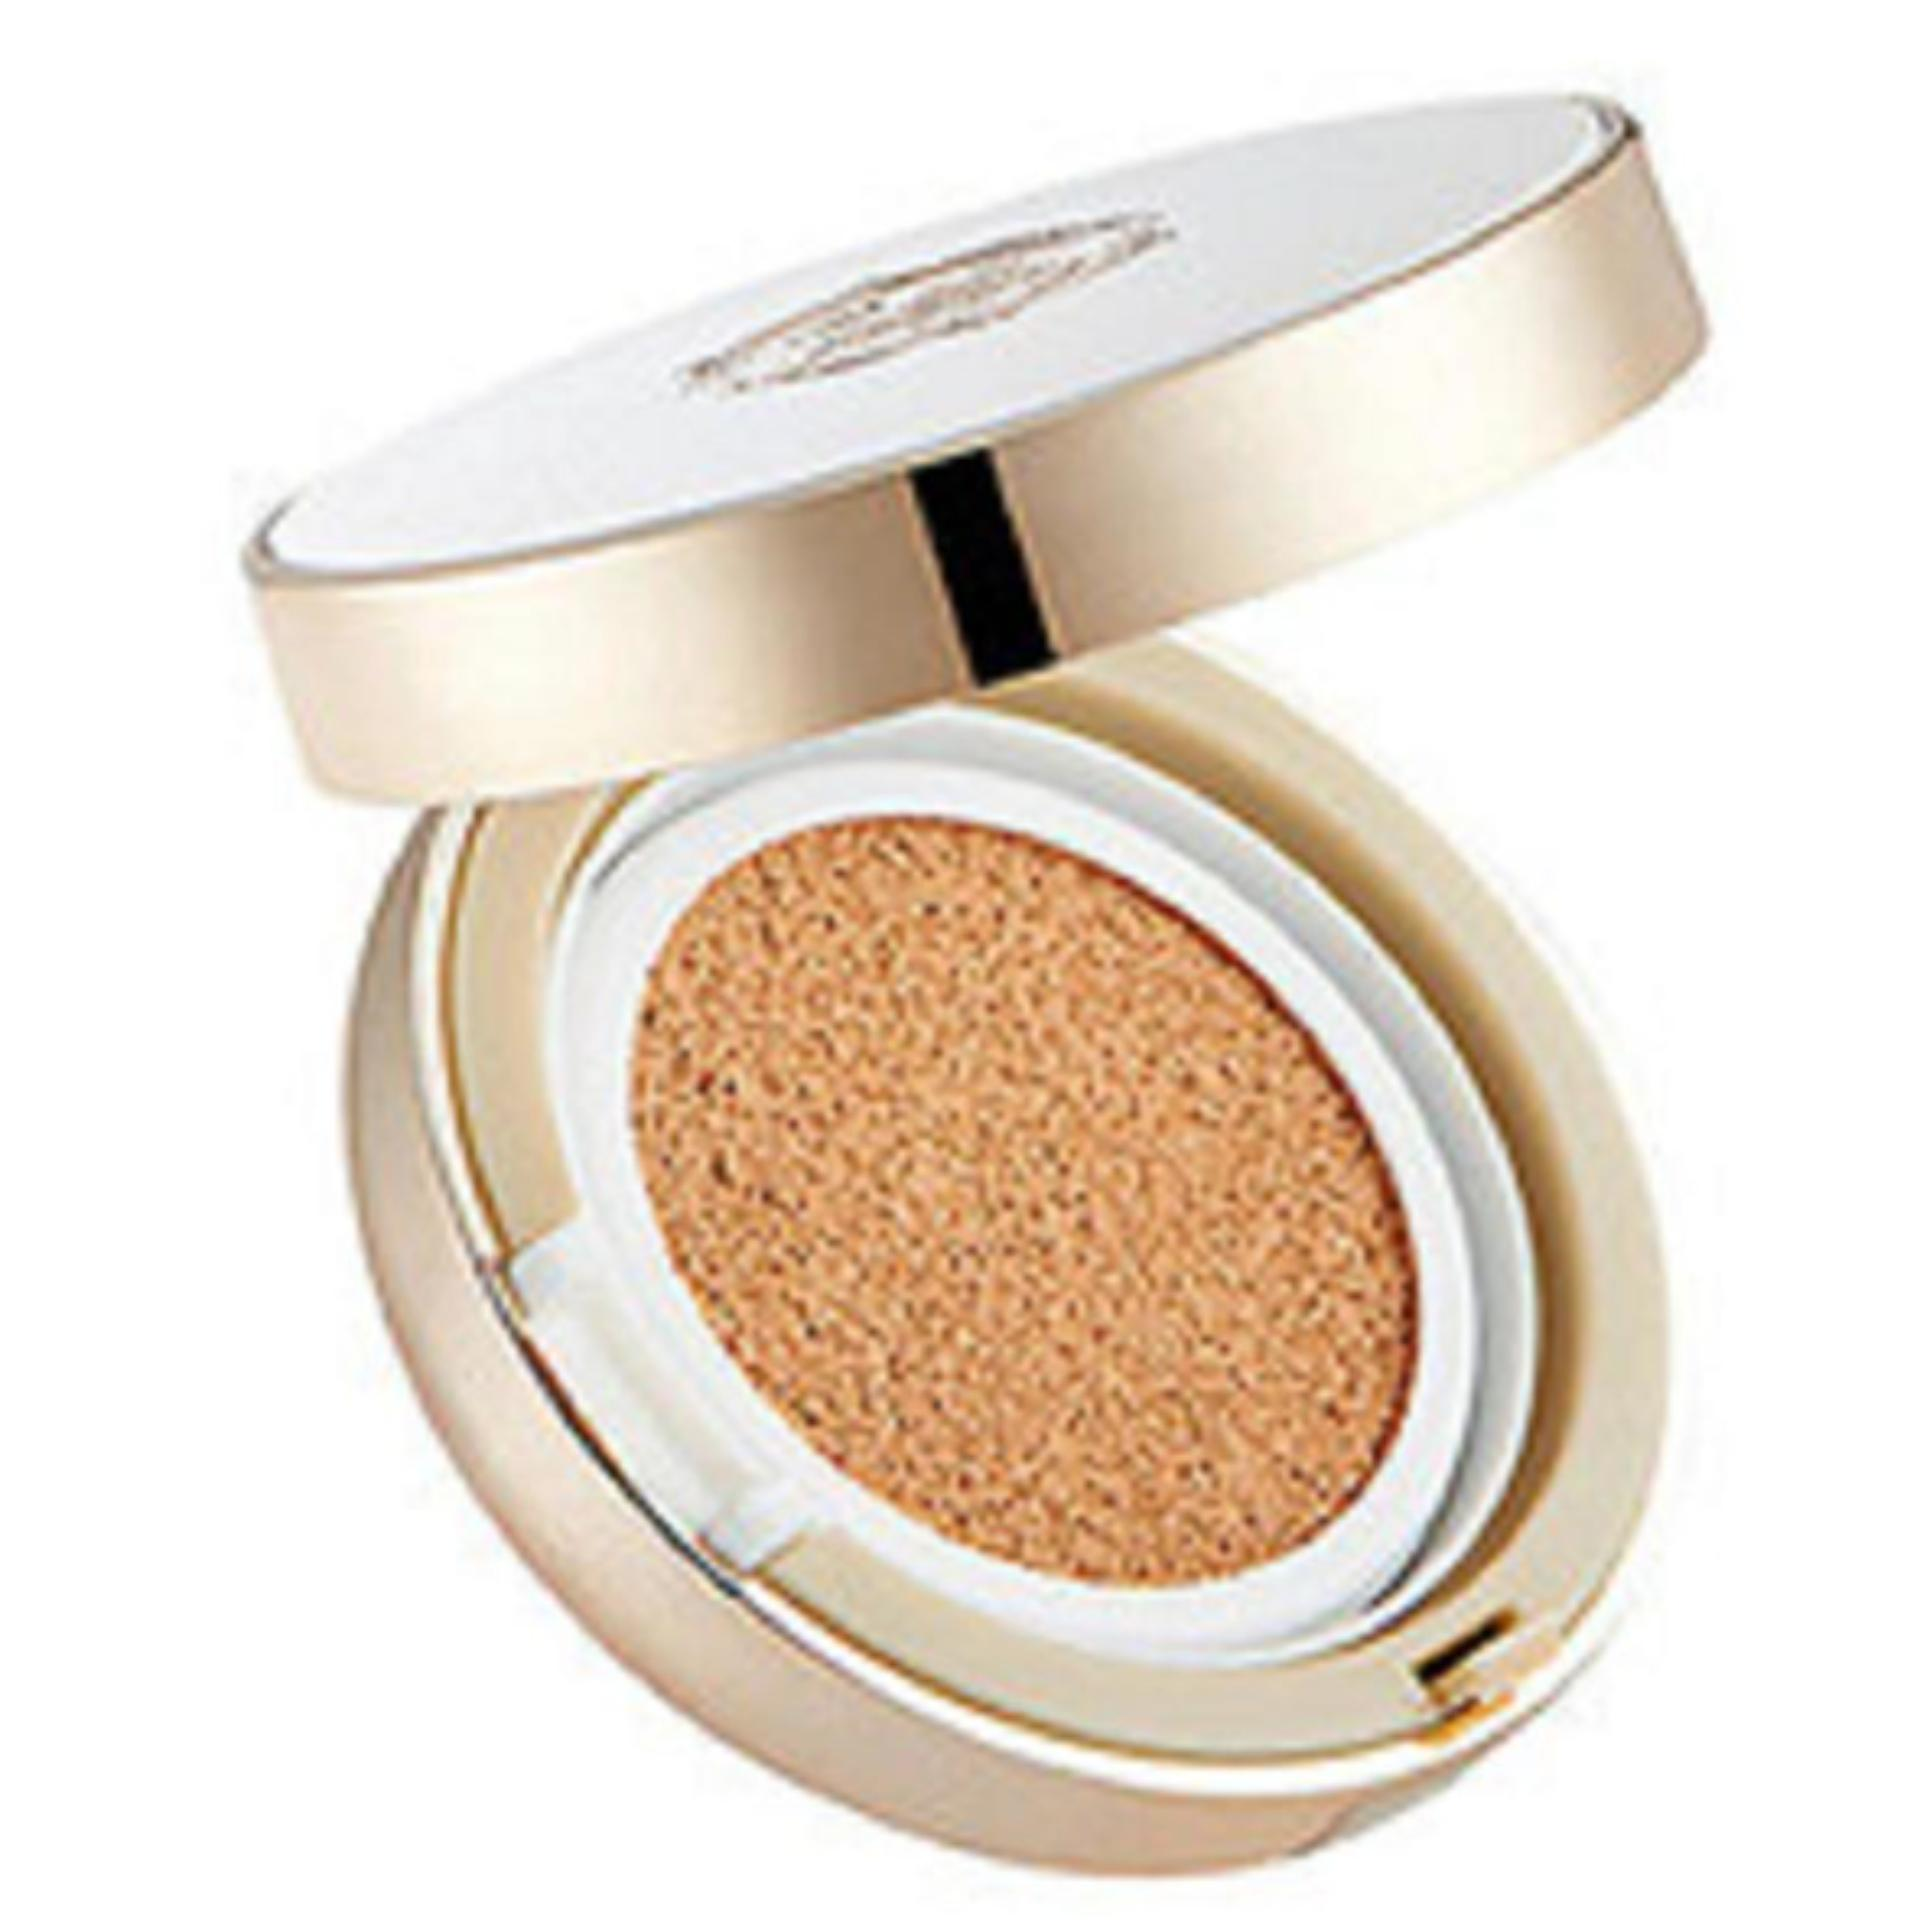 The Face Shop Miracle Finish Oil Control Water BB Cushion SPF 50 PA++ Refill + Puff